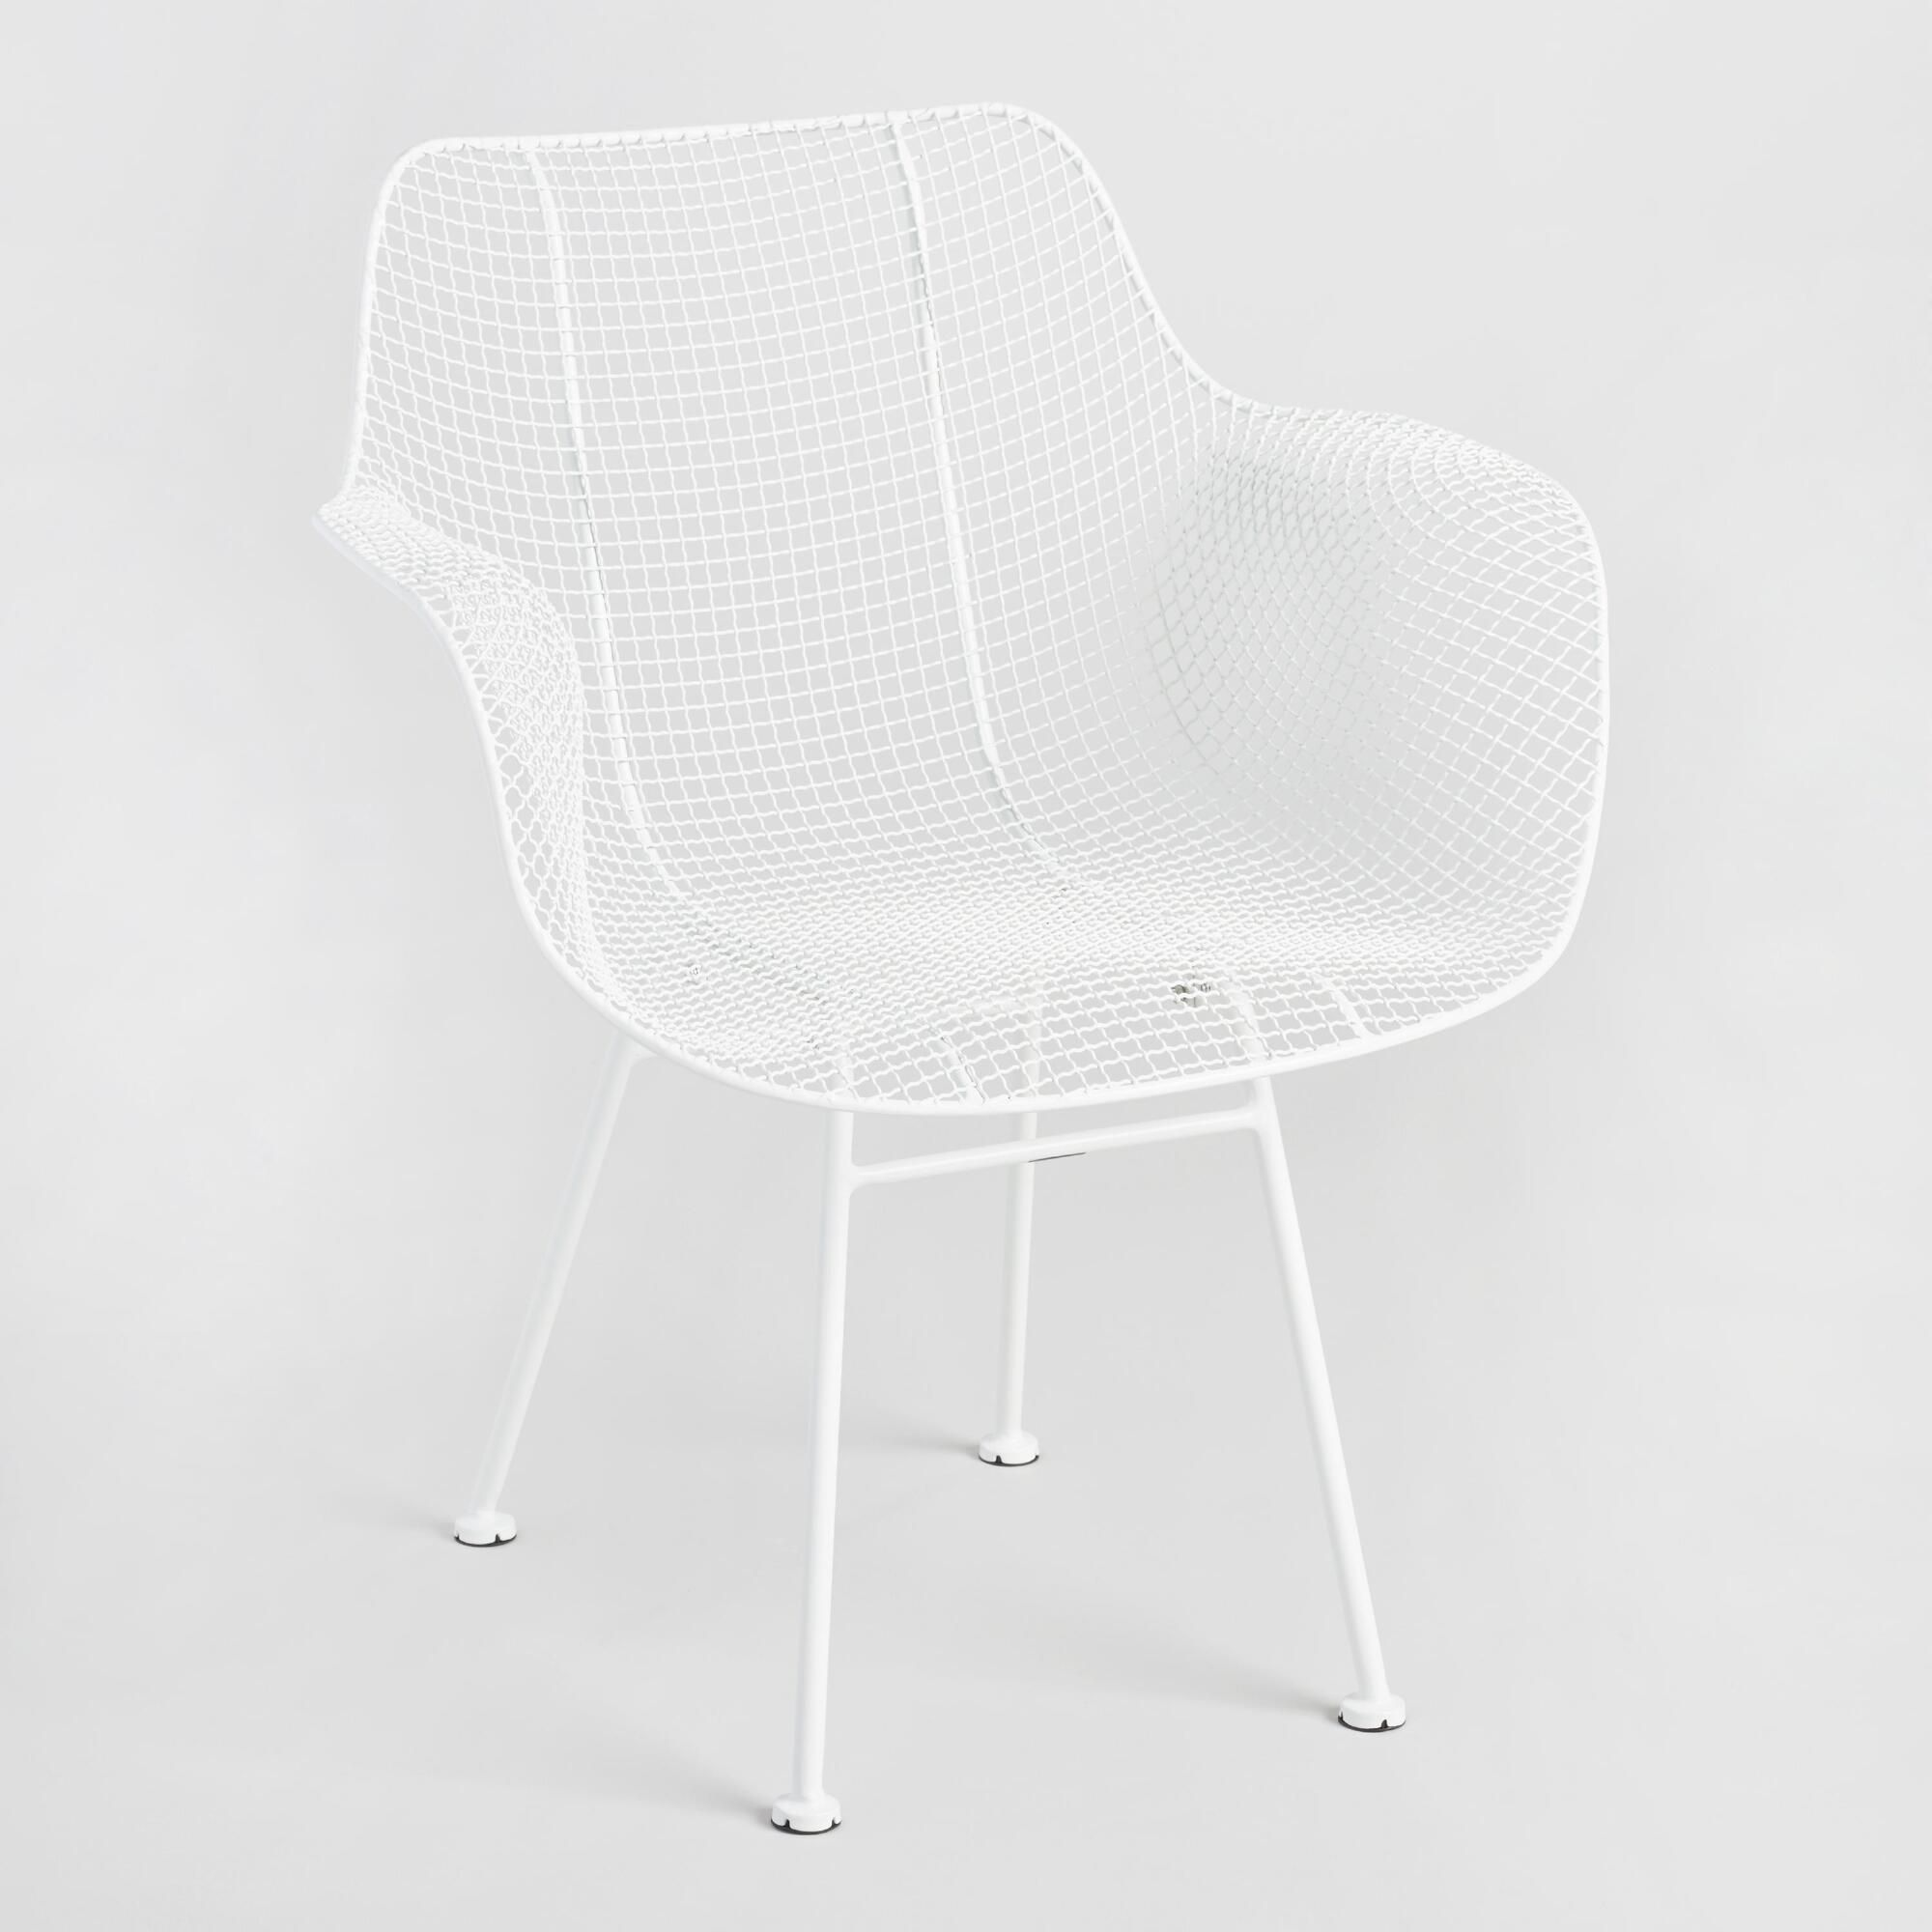 Molded plastic and metal chairs - Our Side Chairs Feature White Mesh Molded Seats That Cup The Body For Maximum Comfort